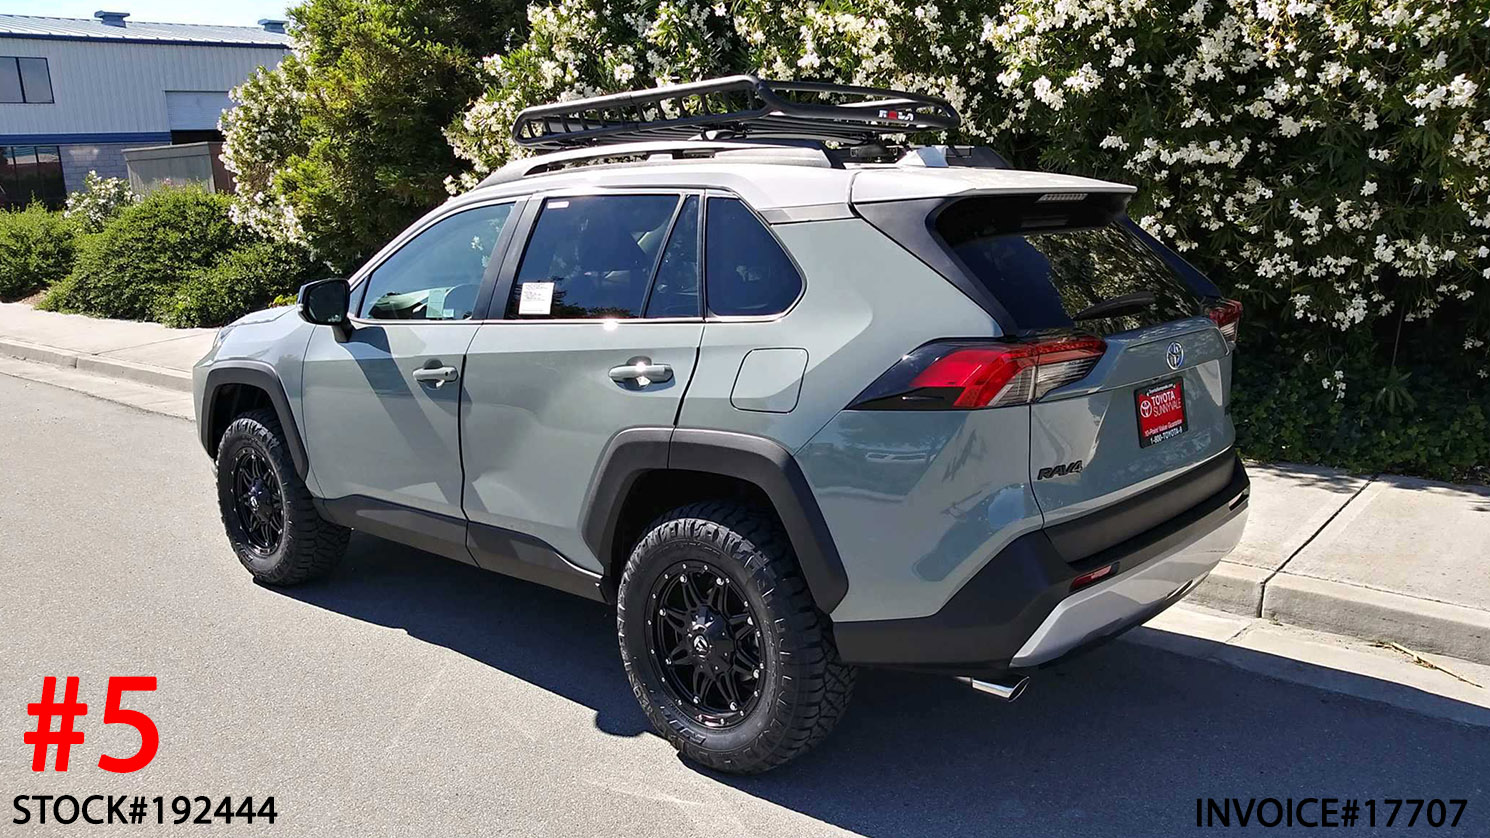 Lifted F150 For Sale >> #192444 2019 TOYOTA RAV4 | Truck and SUV Parts Warehouse